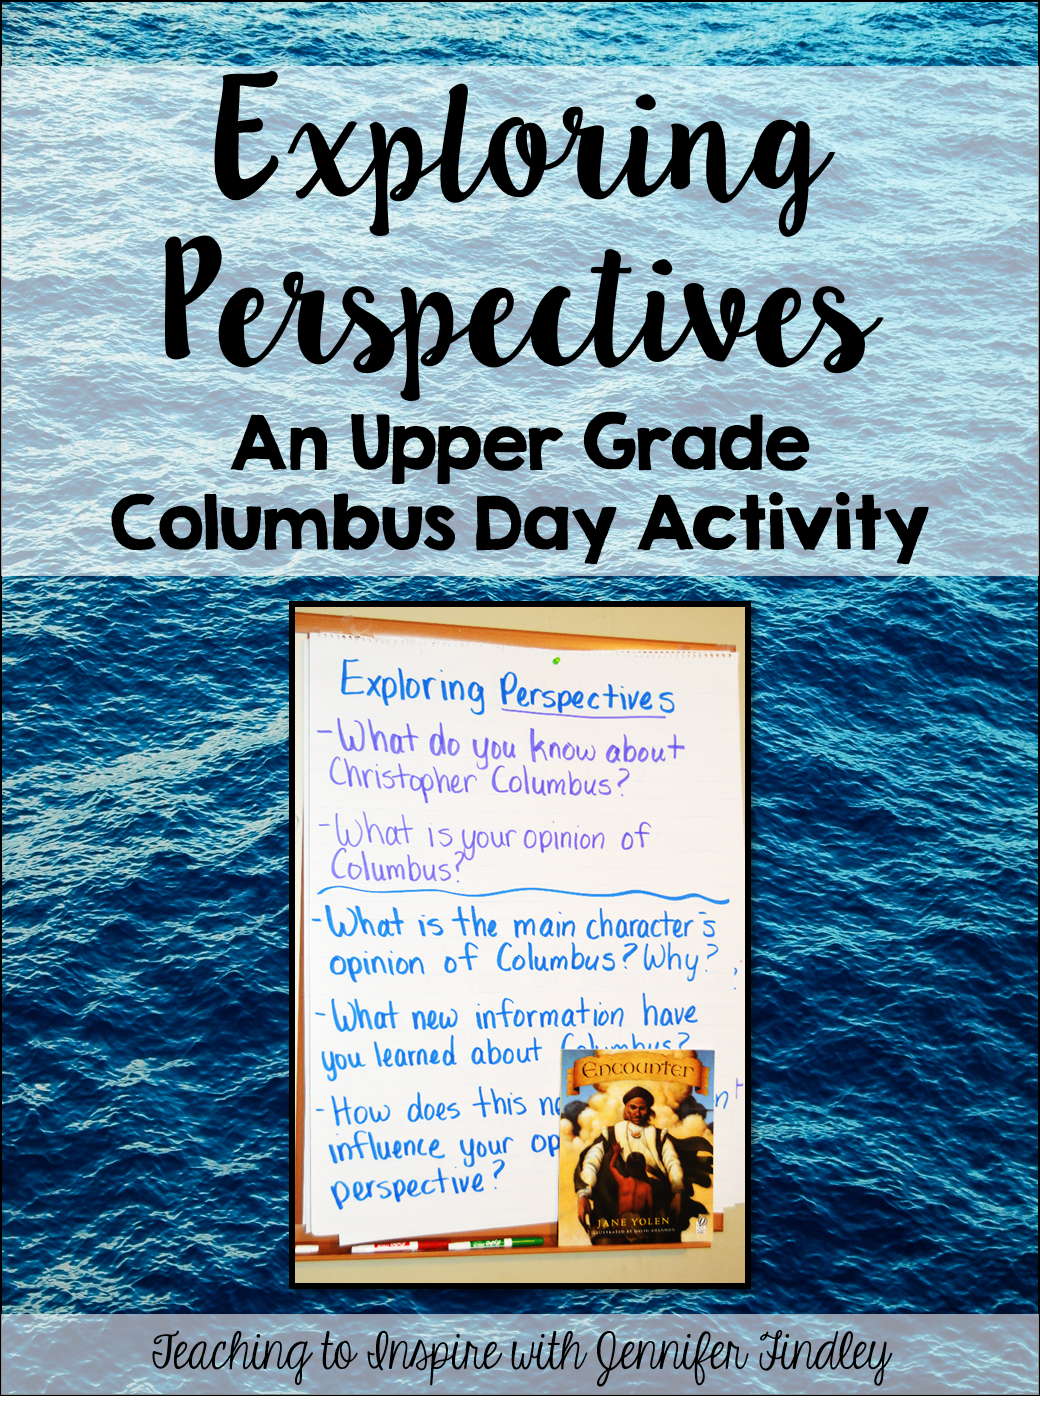 Columbus Day Activity For Upper Grades